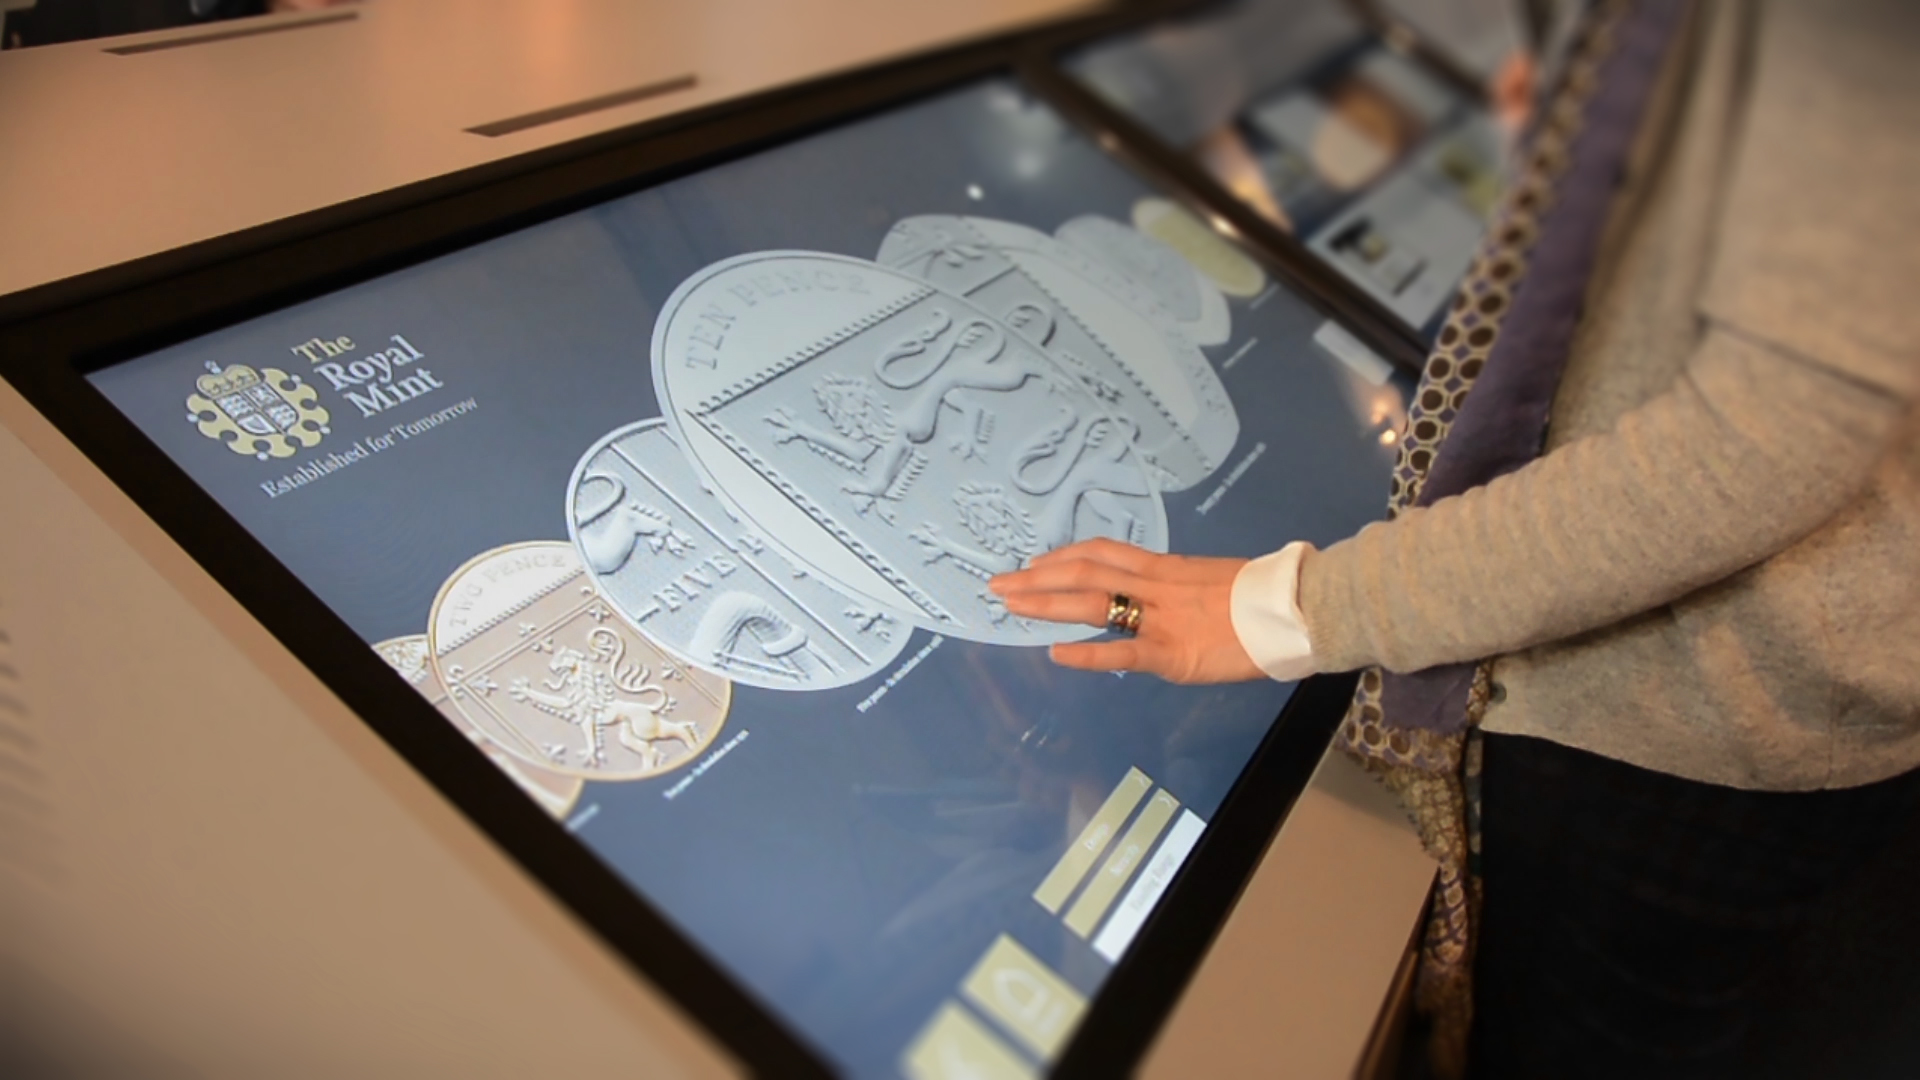 woman interacting with The Royal Mint interactive touchscreen software displayed on large monitor on white surface